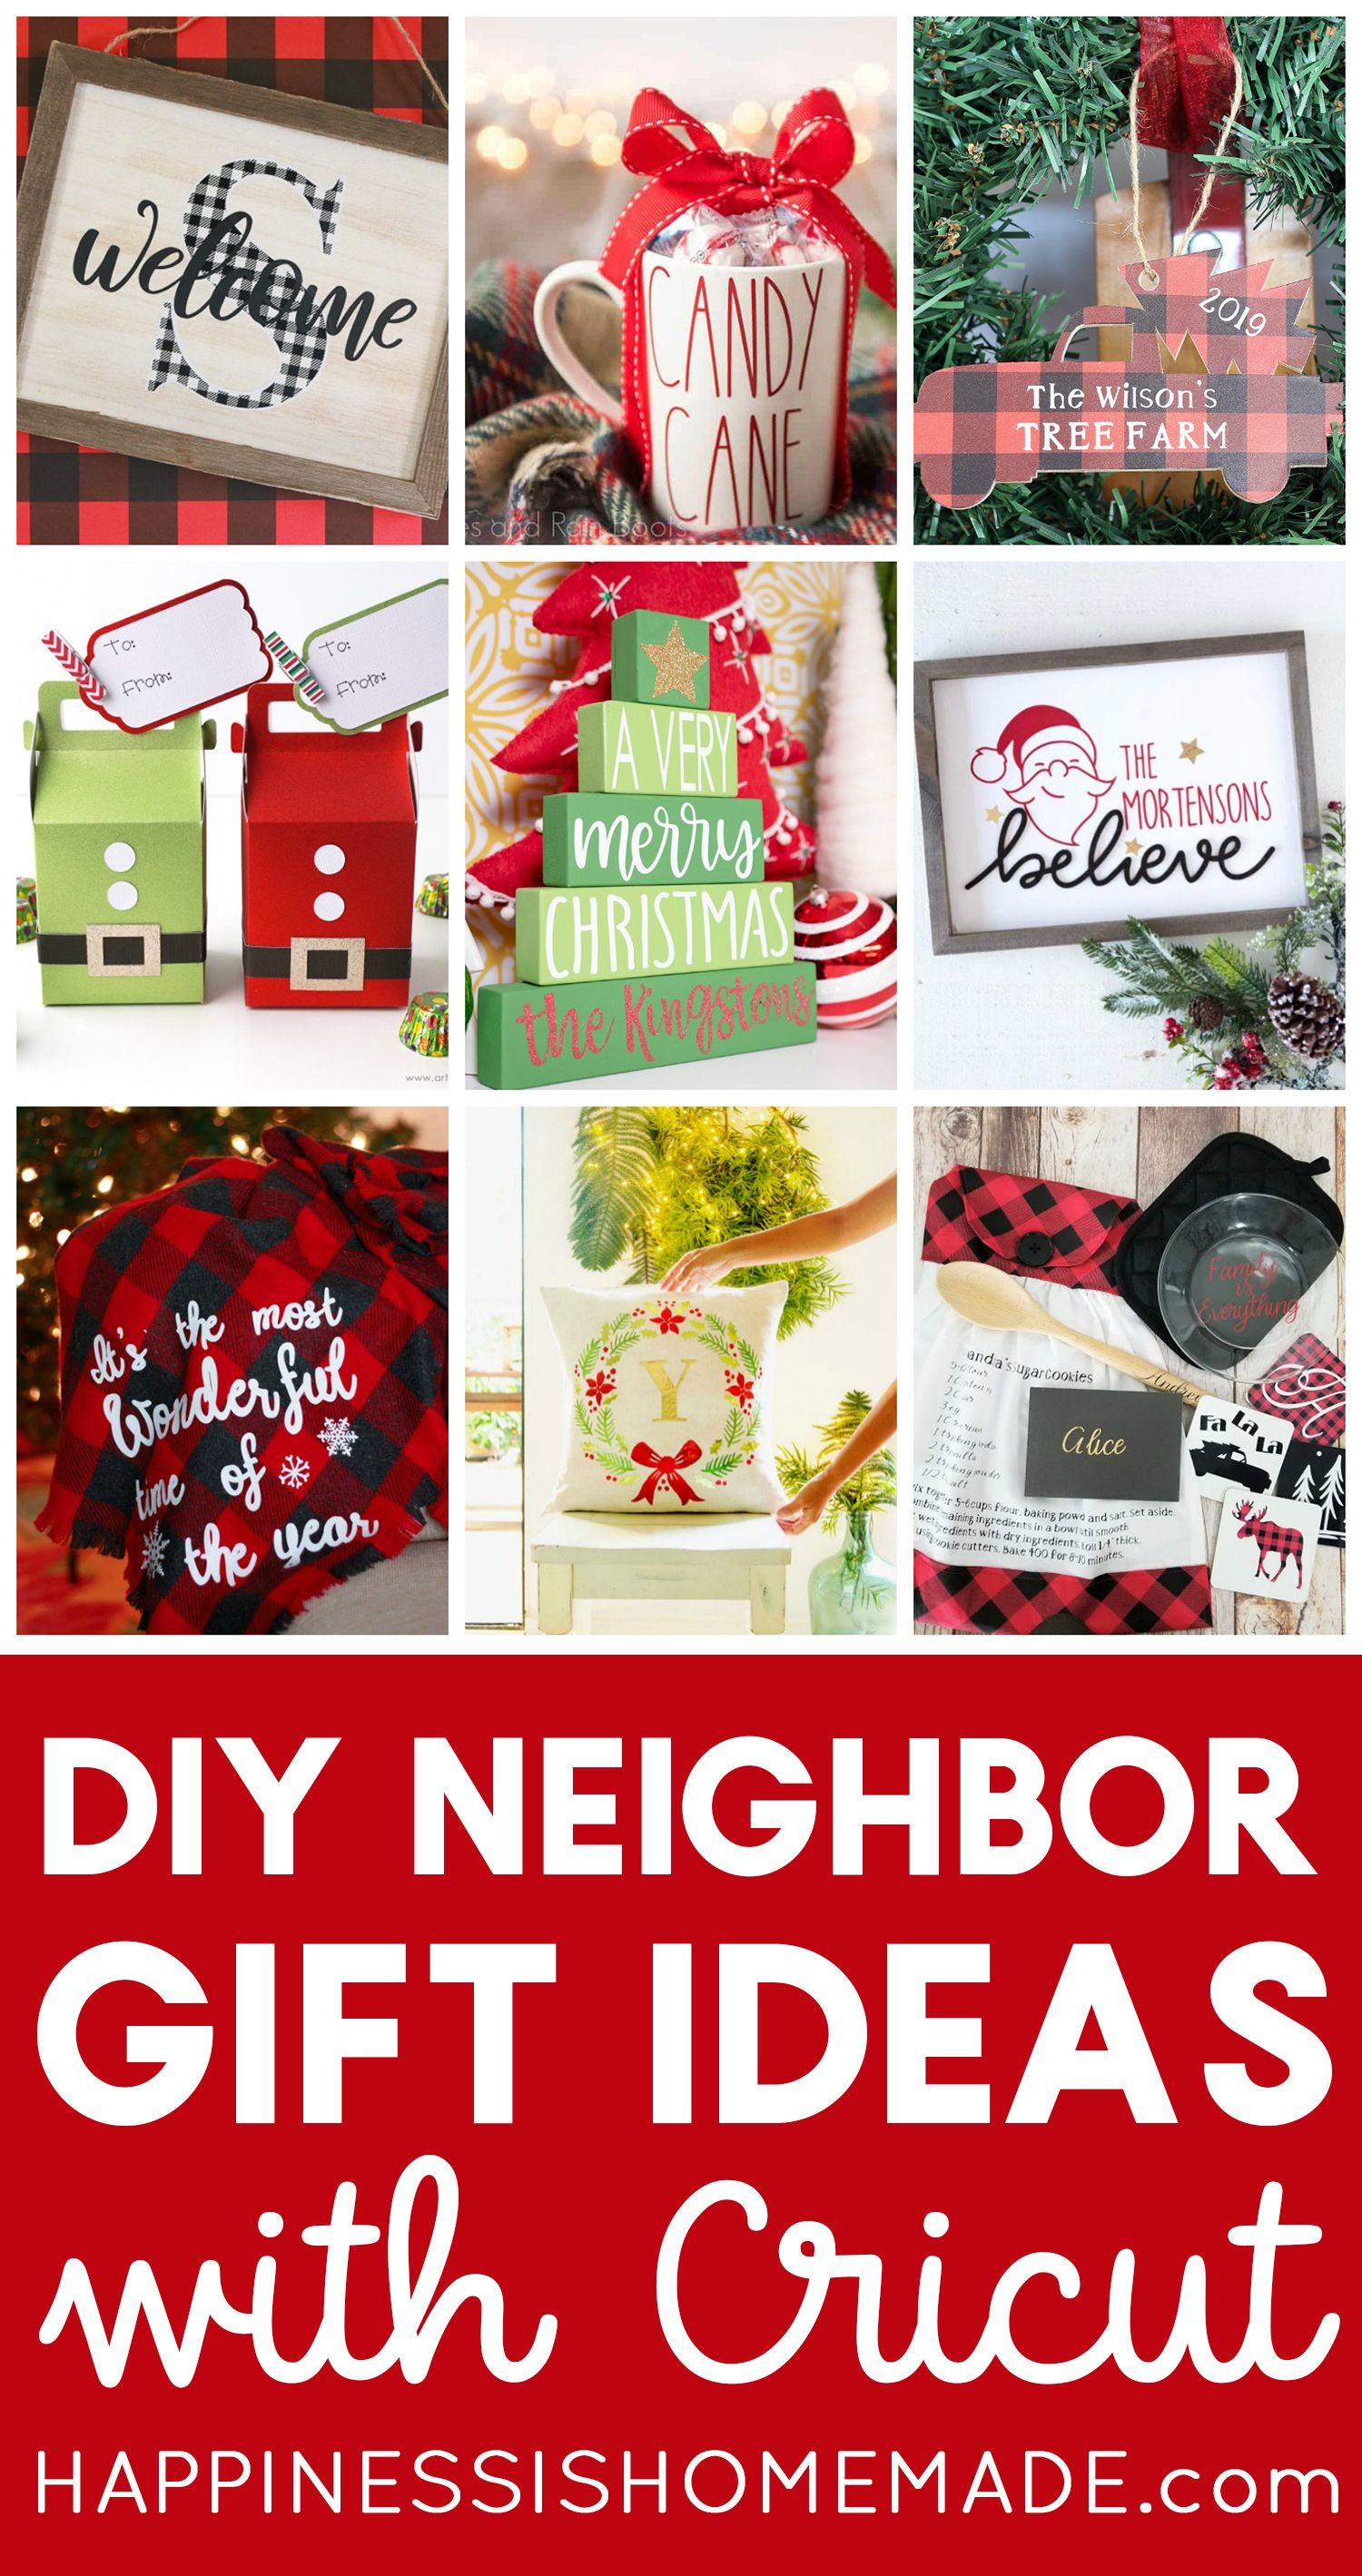 These Diy Neighbor Gift Ideas Are All Quick And Easy To Make With Your Cricut Machine Make The Holidays Custom Holiday Gifts Neighbor Gifts Christmas Neighbor